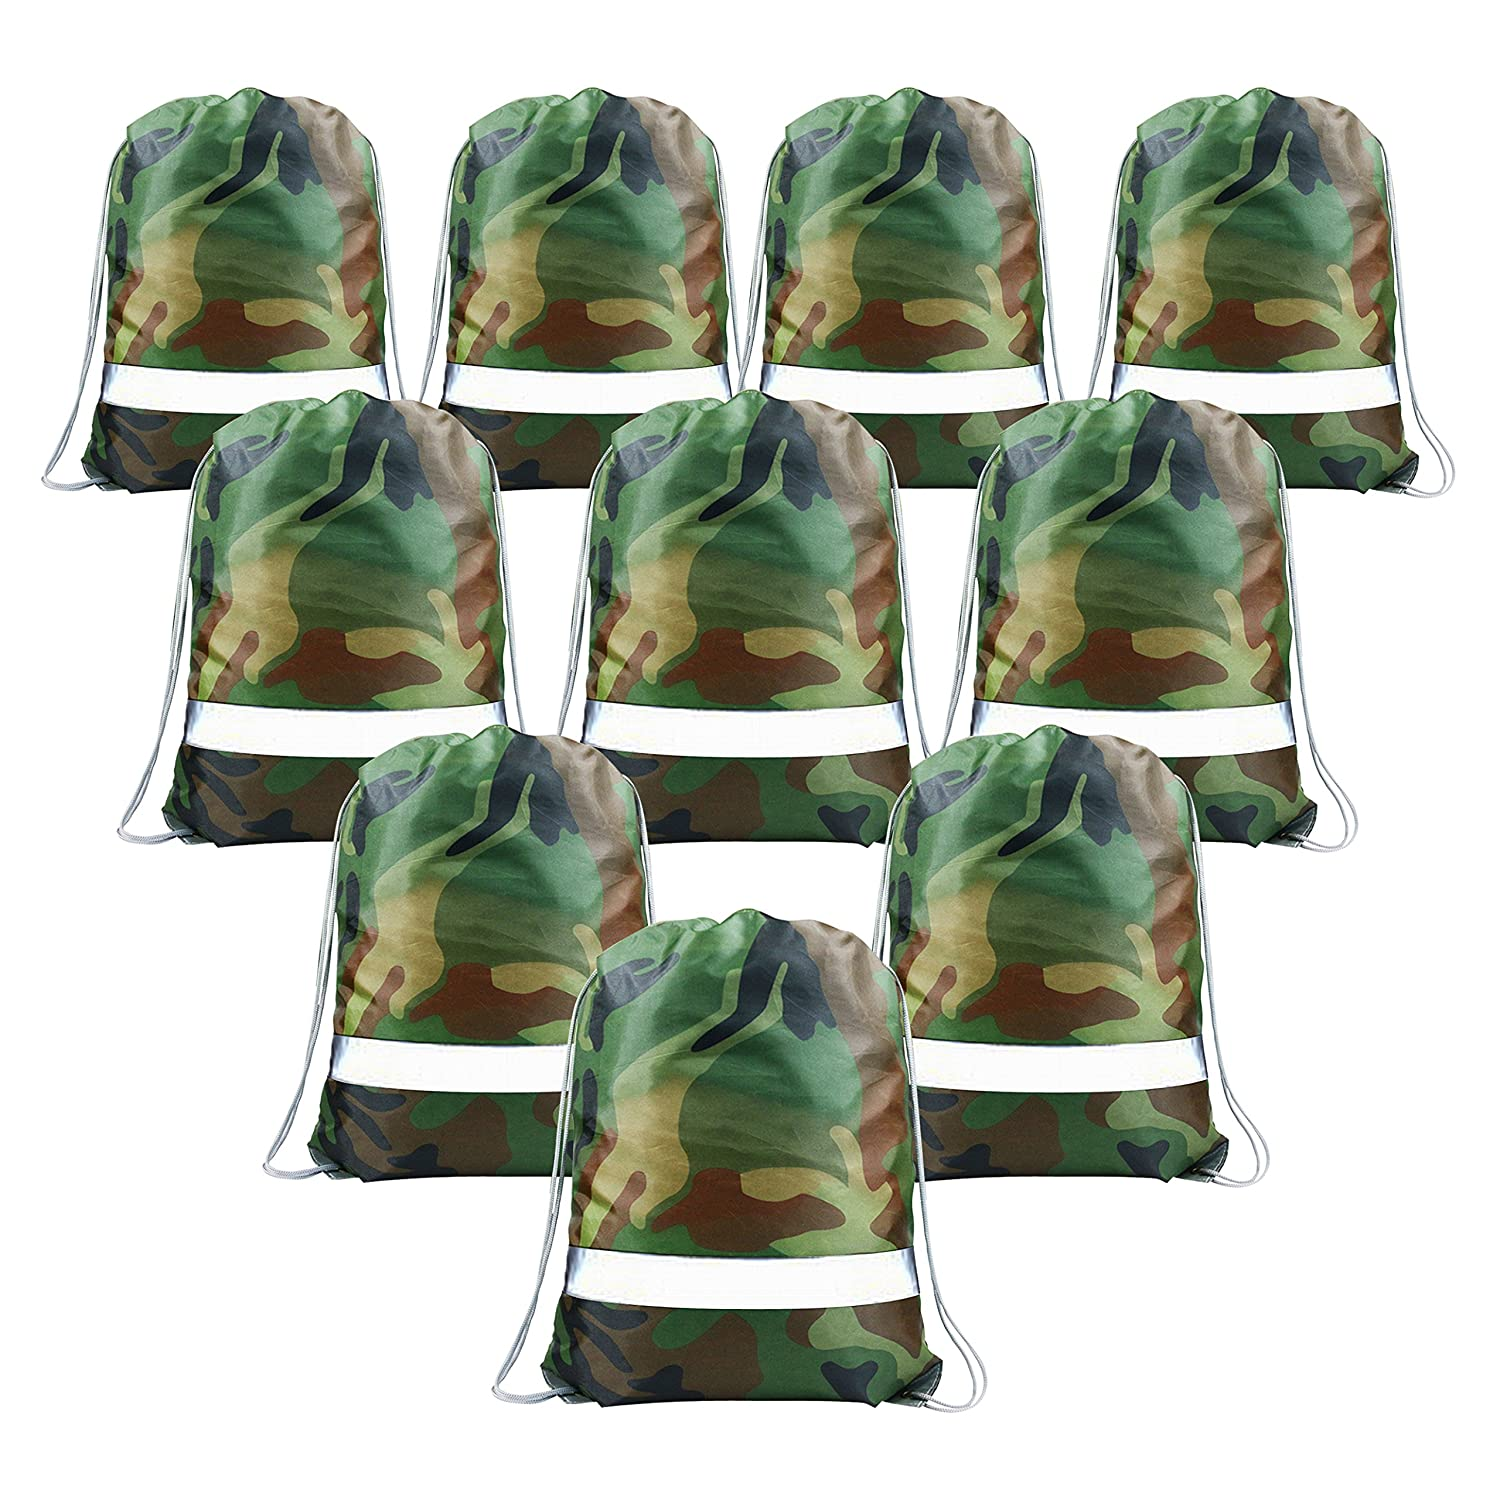 Party Bags Camo Drawstring Bags 10 pcs, Give Away Bags for Birthday Party Favours, Camouflage String Backpacks for Boys Girls Teens, Goodie Bags Large, PE Beach Swim Bags